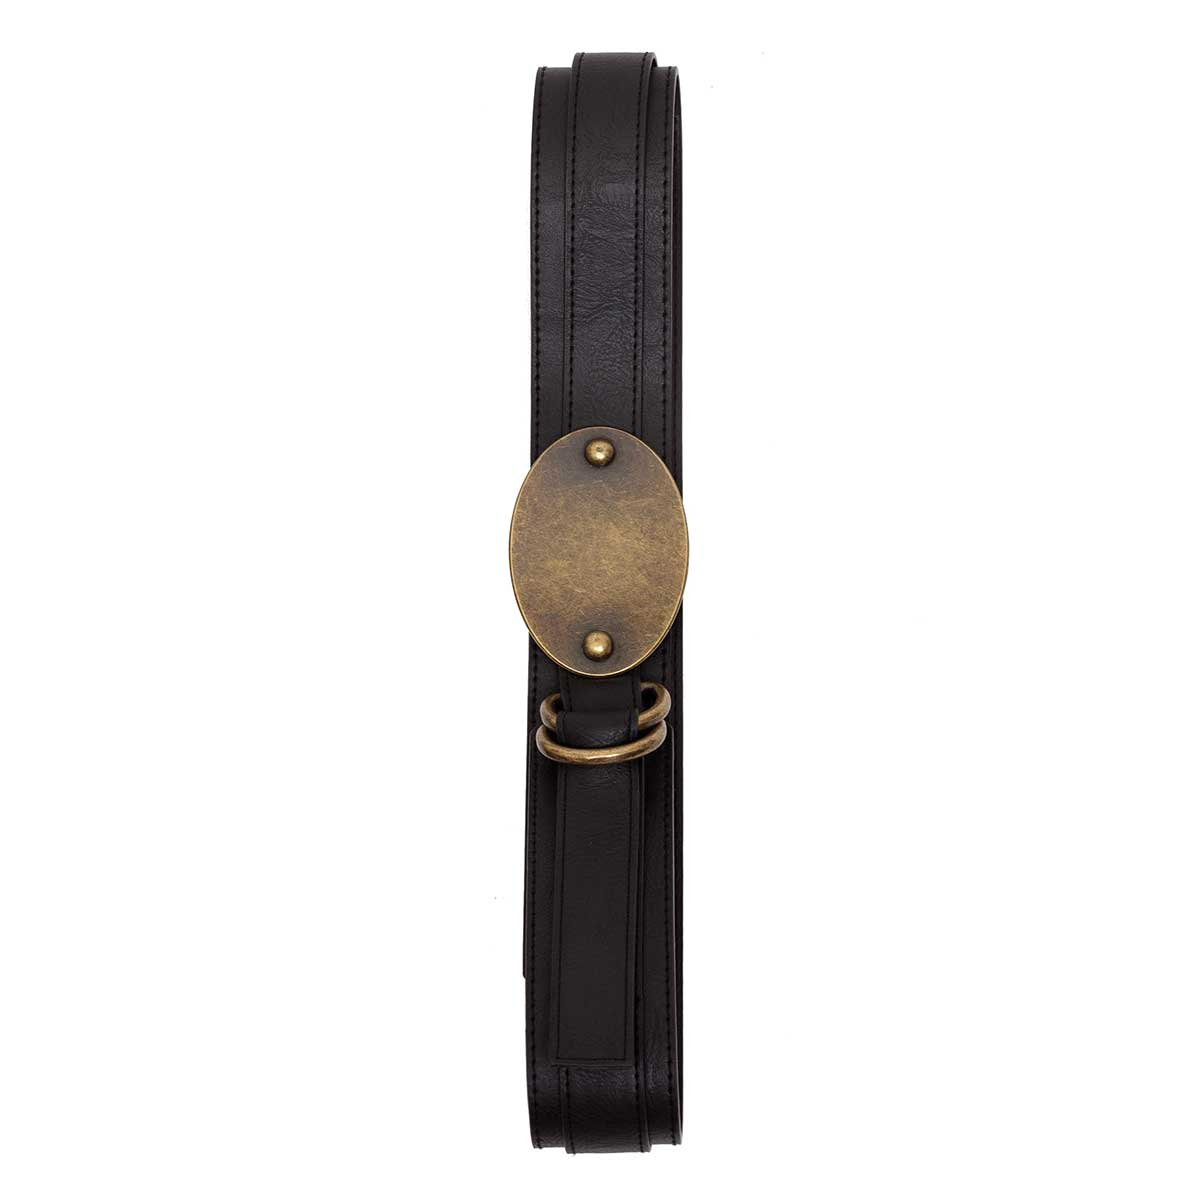 BLACK BELT WITH ANTIQUE BRONZE OVAL BUCKLE